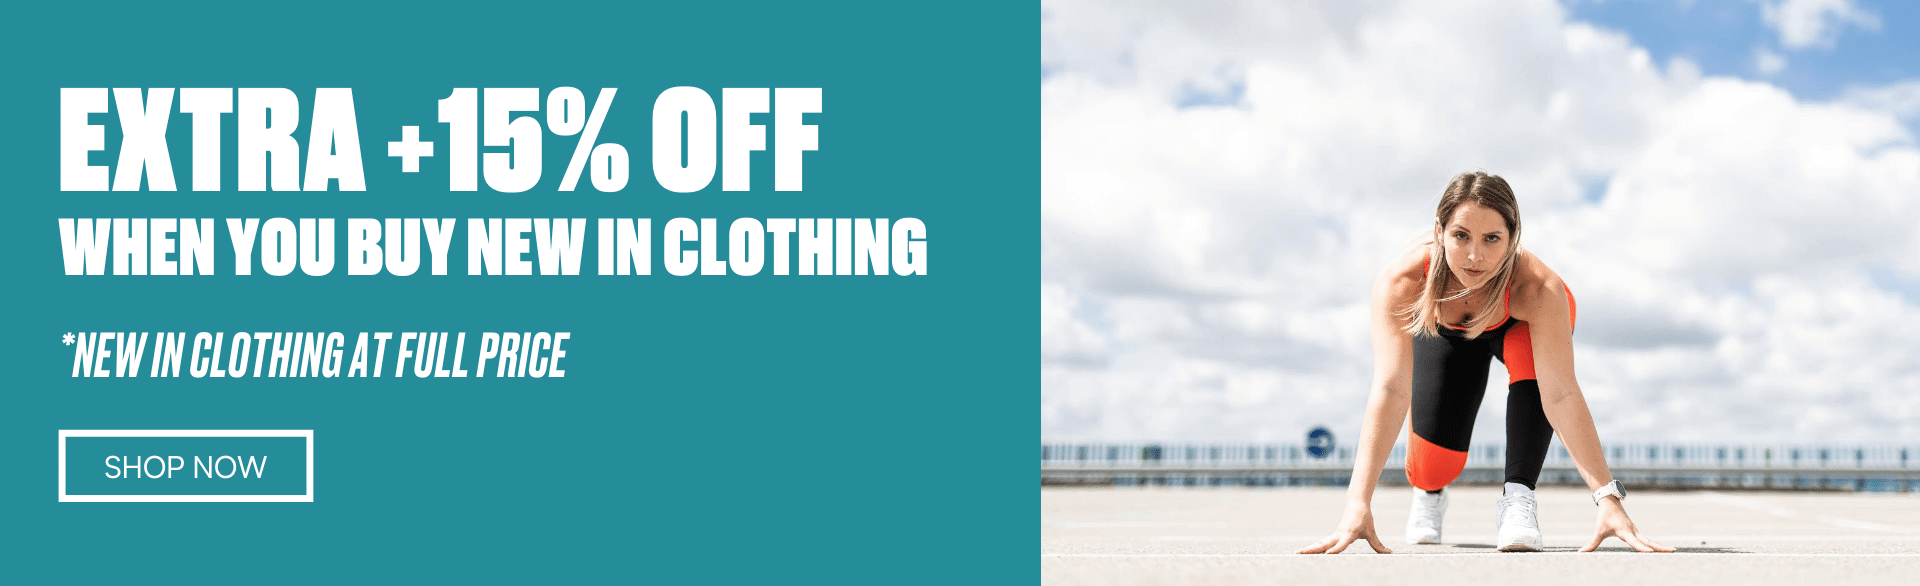 Extra +15% off your order when you buy new in Clothing. Clothing at full price.